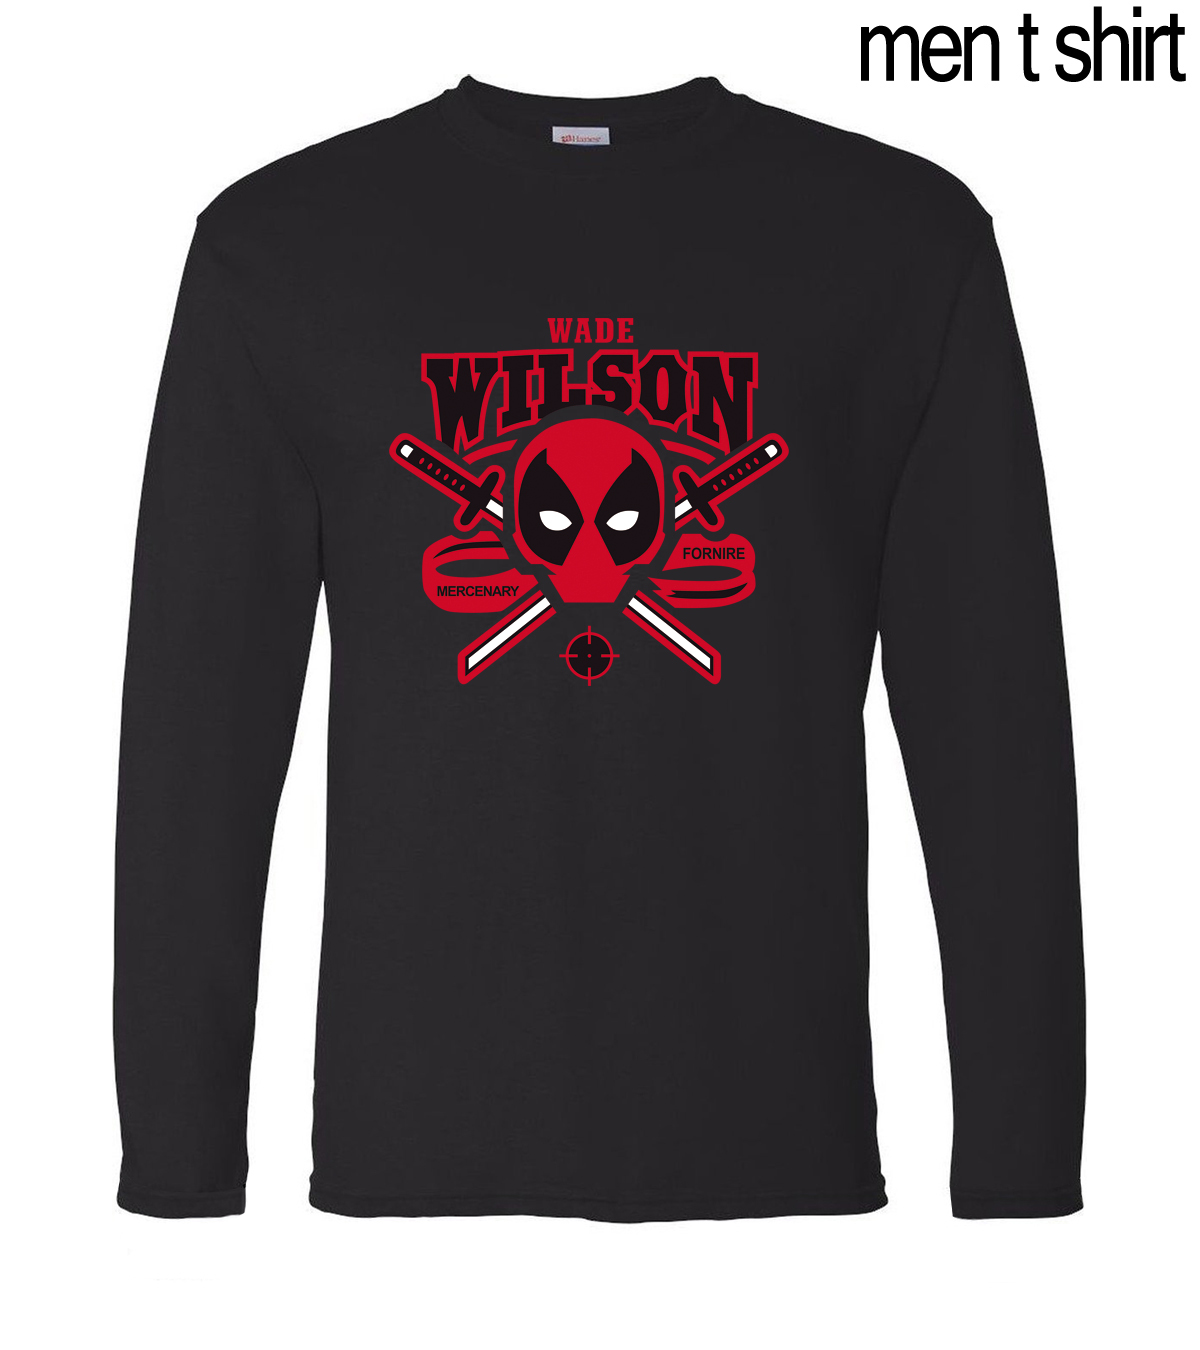 2019 New Spring Summer Wade Wilson Deadpool Long Sleeve Shirt 100% Cotton High Quality Male T-Shirts Fashion Brand Men T Shirts